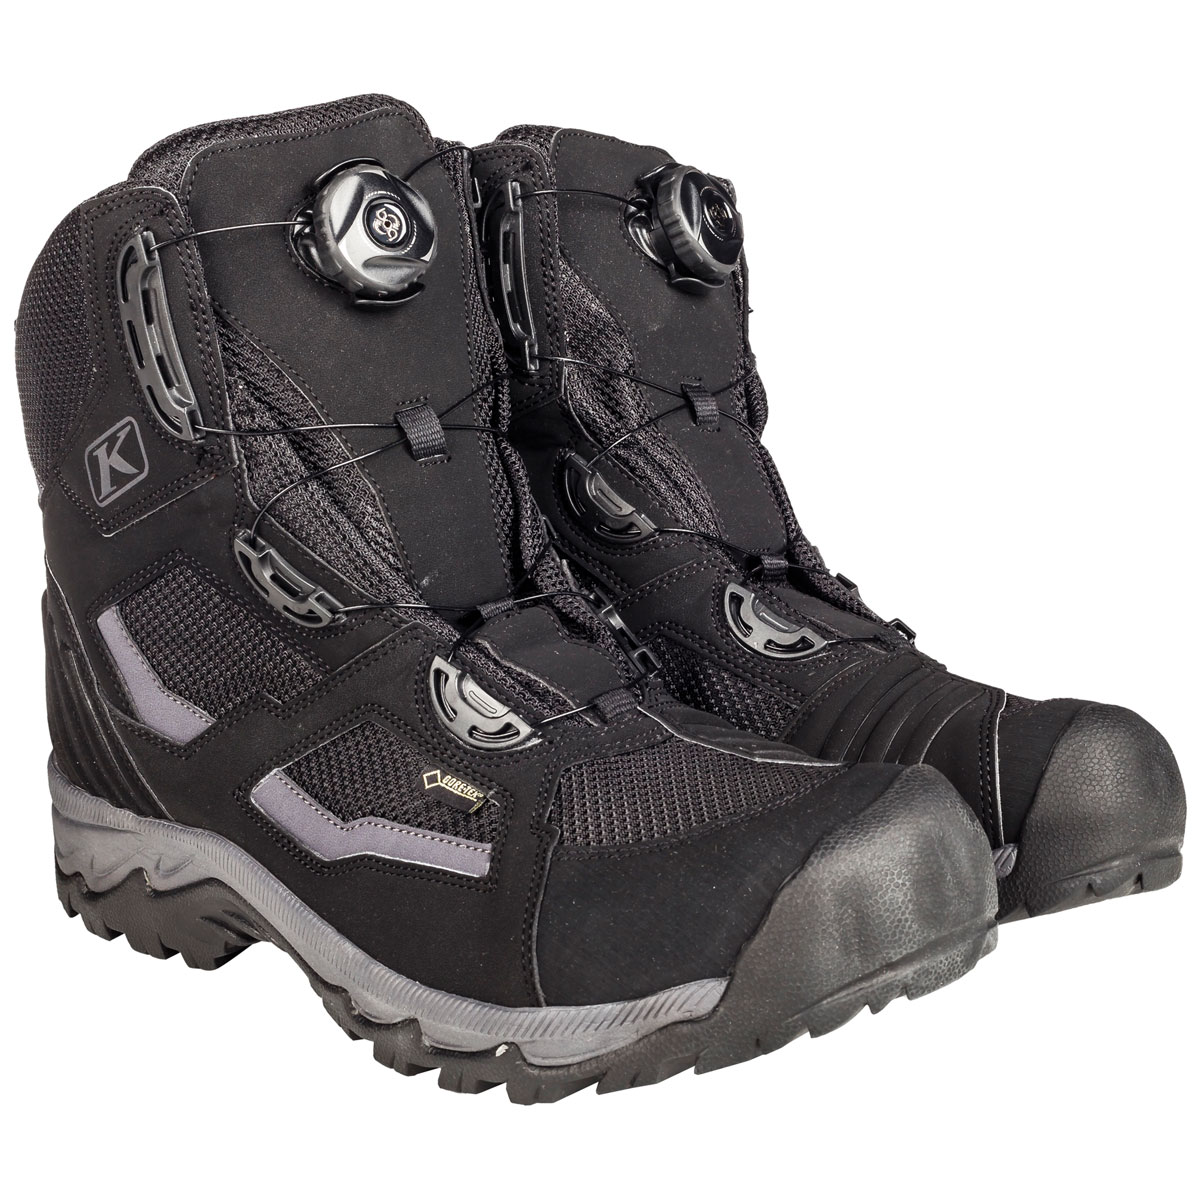 Klim Men's Outlander GTX Black Boots